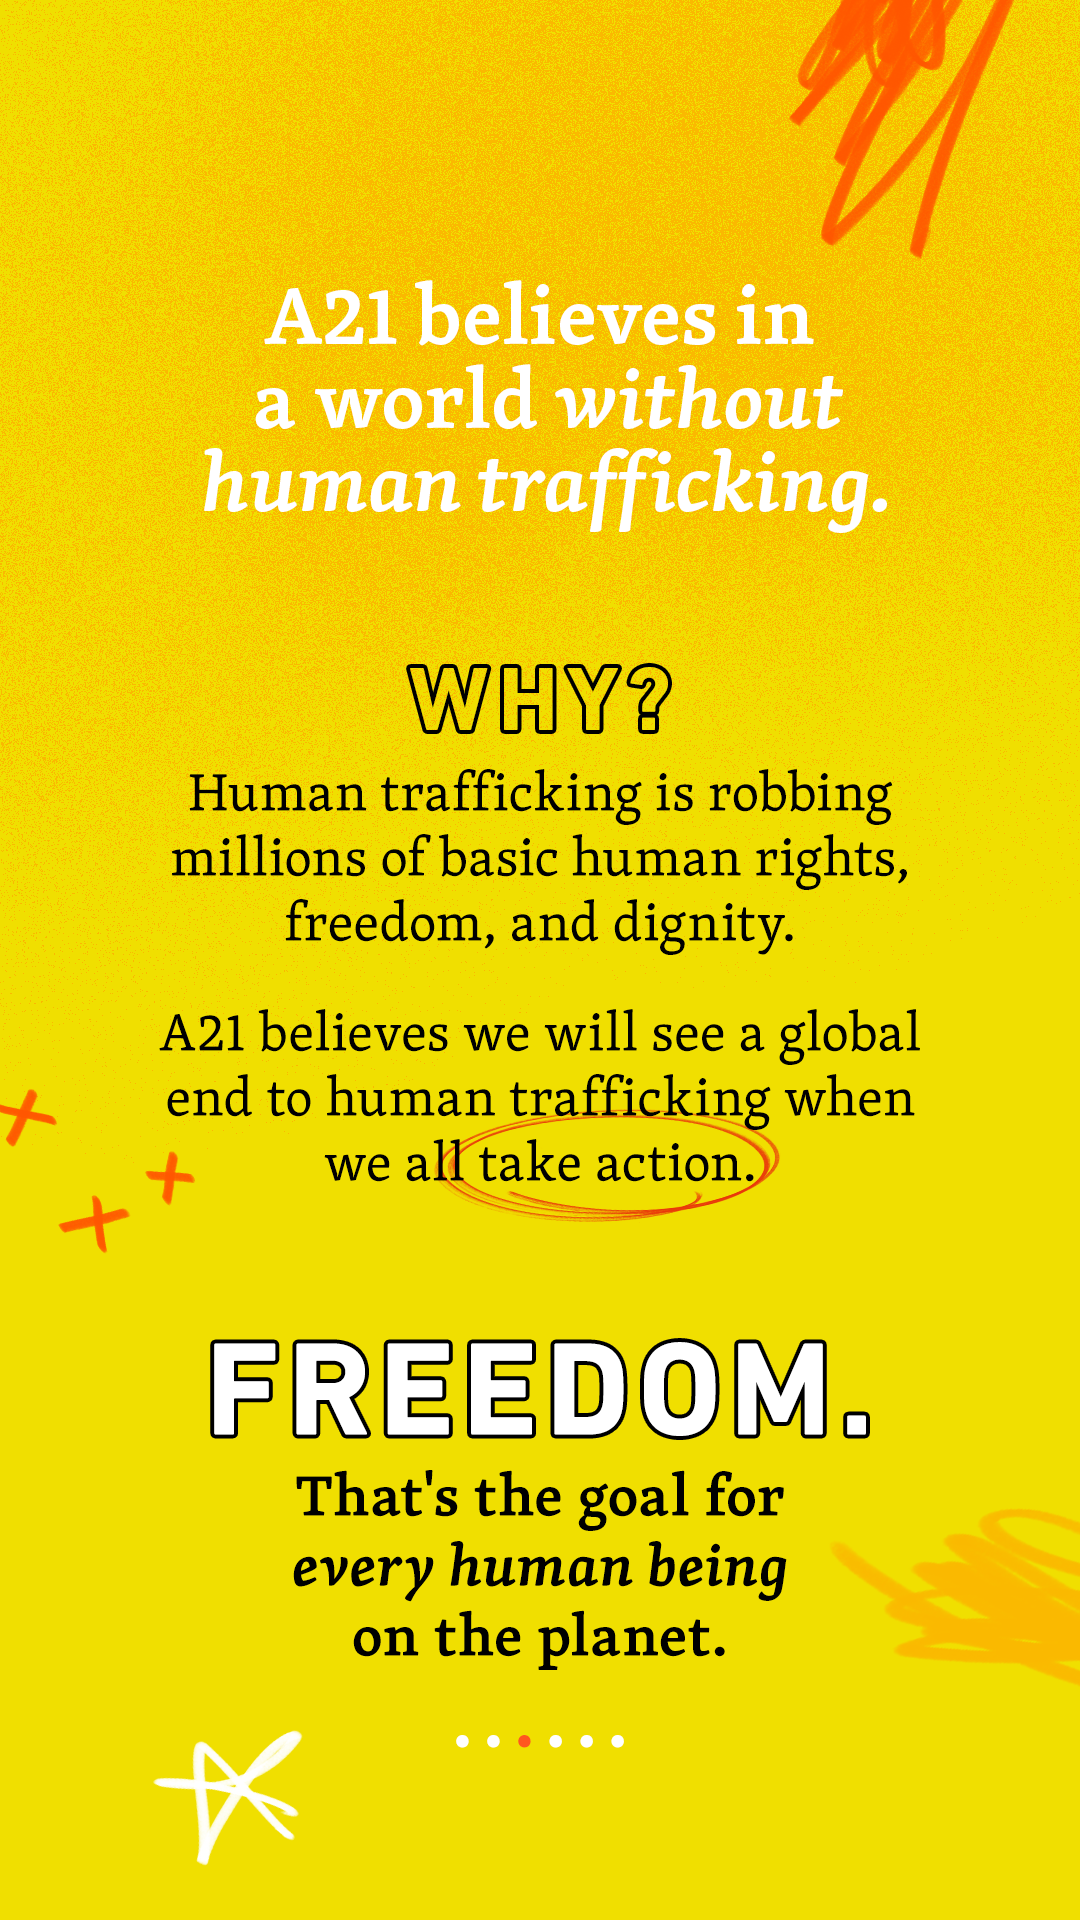 A21 believes in a world without trafficking. Why? Human trafficking is robbing millions of basic human rights, freedom, and dignity. A21 believes we will see a global end to human trafficking when we all take action. Freedom. That's the goal for every human being on the planet.